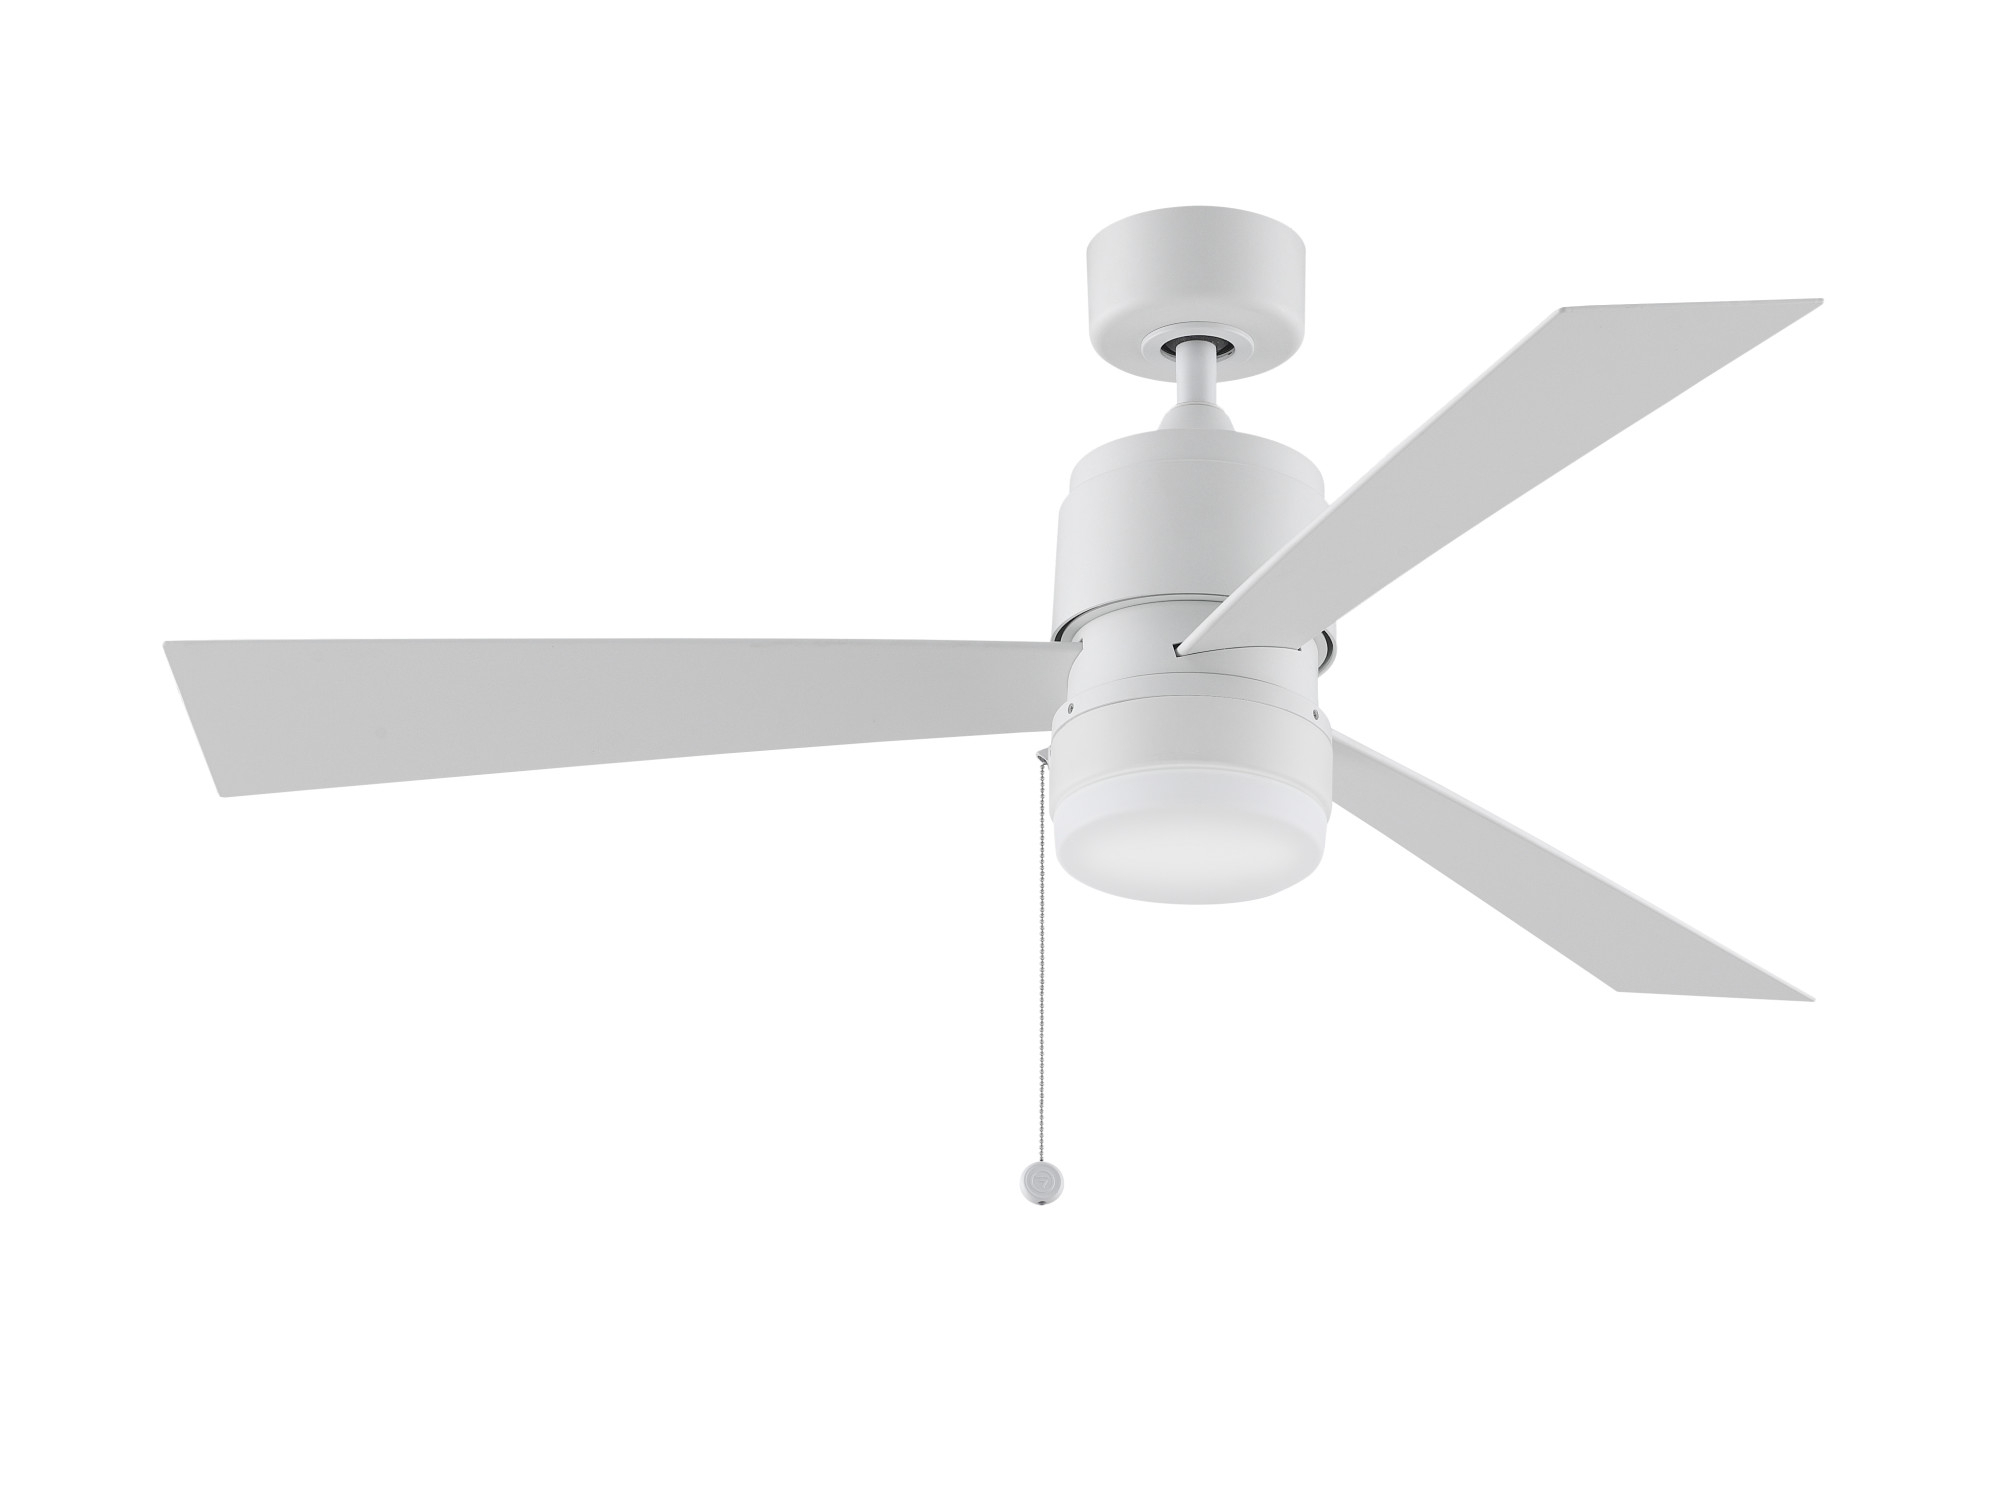 "Zonix 3 Blade Ceiling Fans With Regard To 2020 Details About Fanimation Zonix Wet 52 Zonix 52"" 3 Blade Indoor / Outdoor Ceiling Fan – Silver (View 17 of 20)"